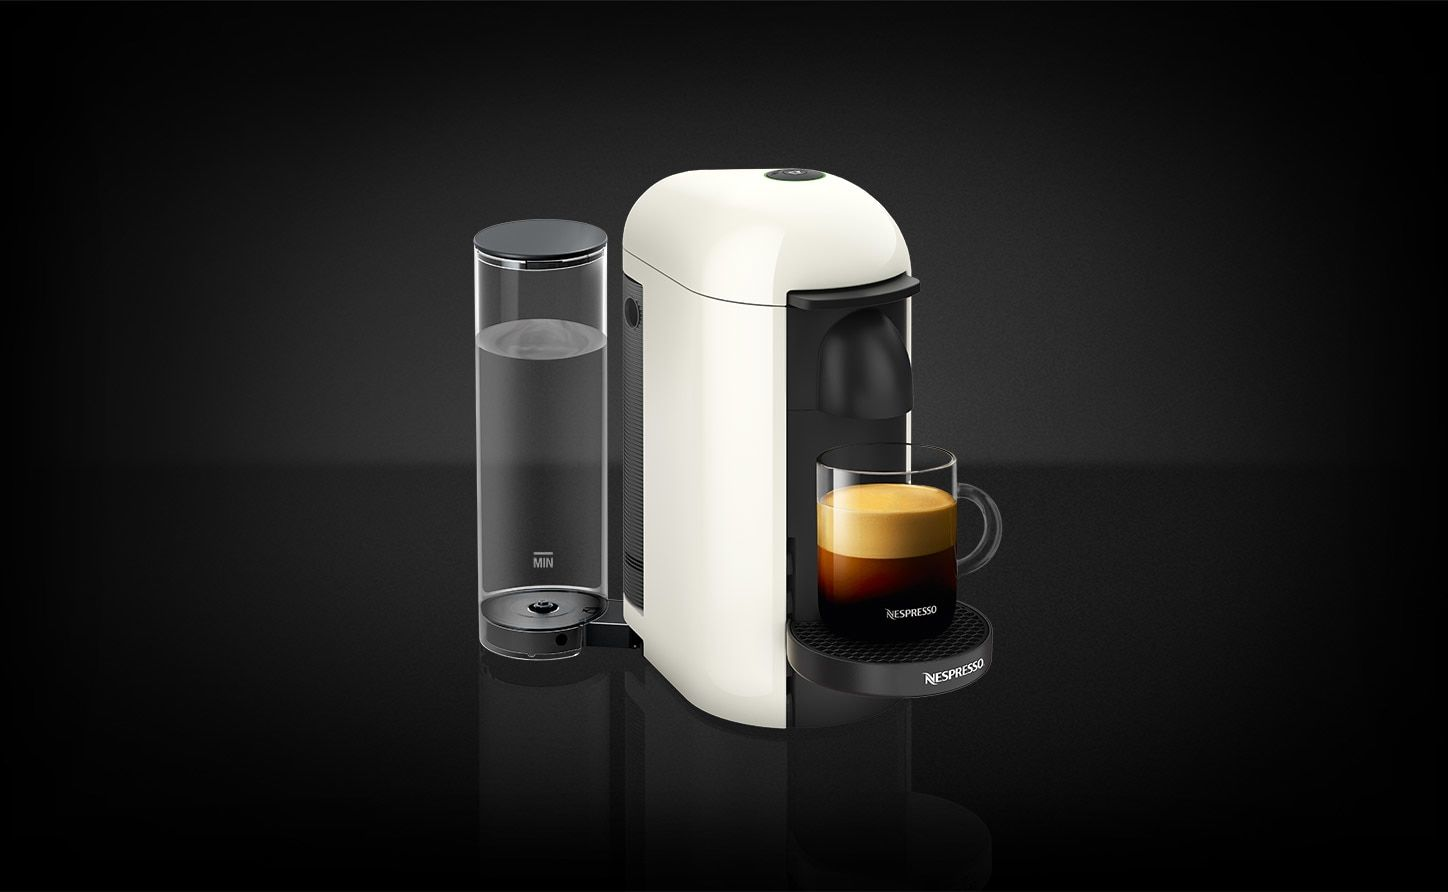 Nespresso VertuoPlus (With images) Nespresso, Coffee